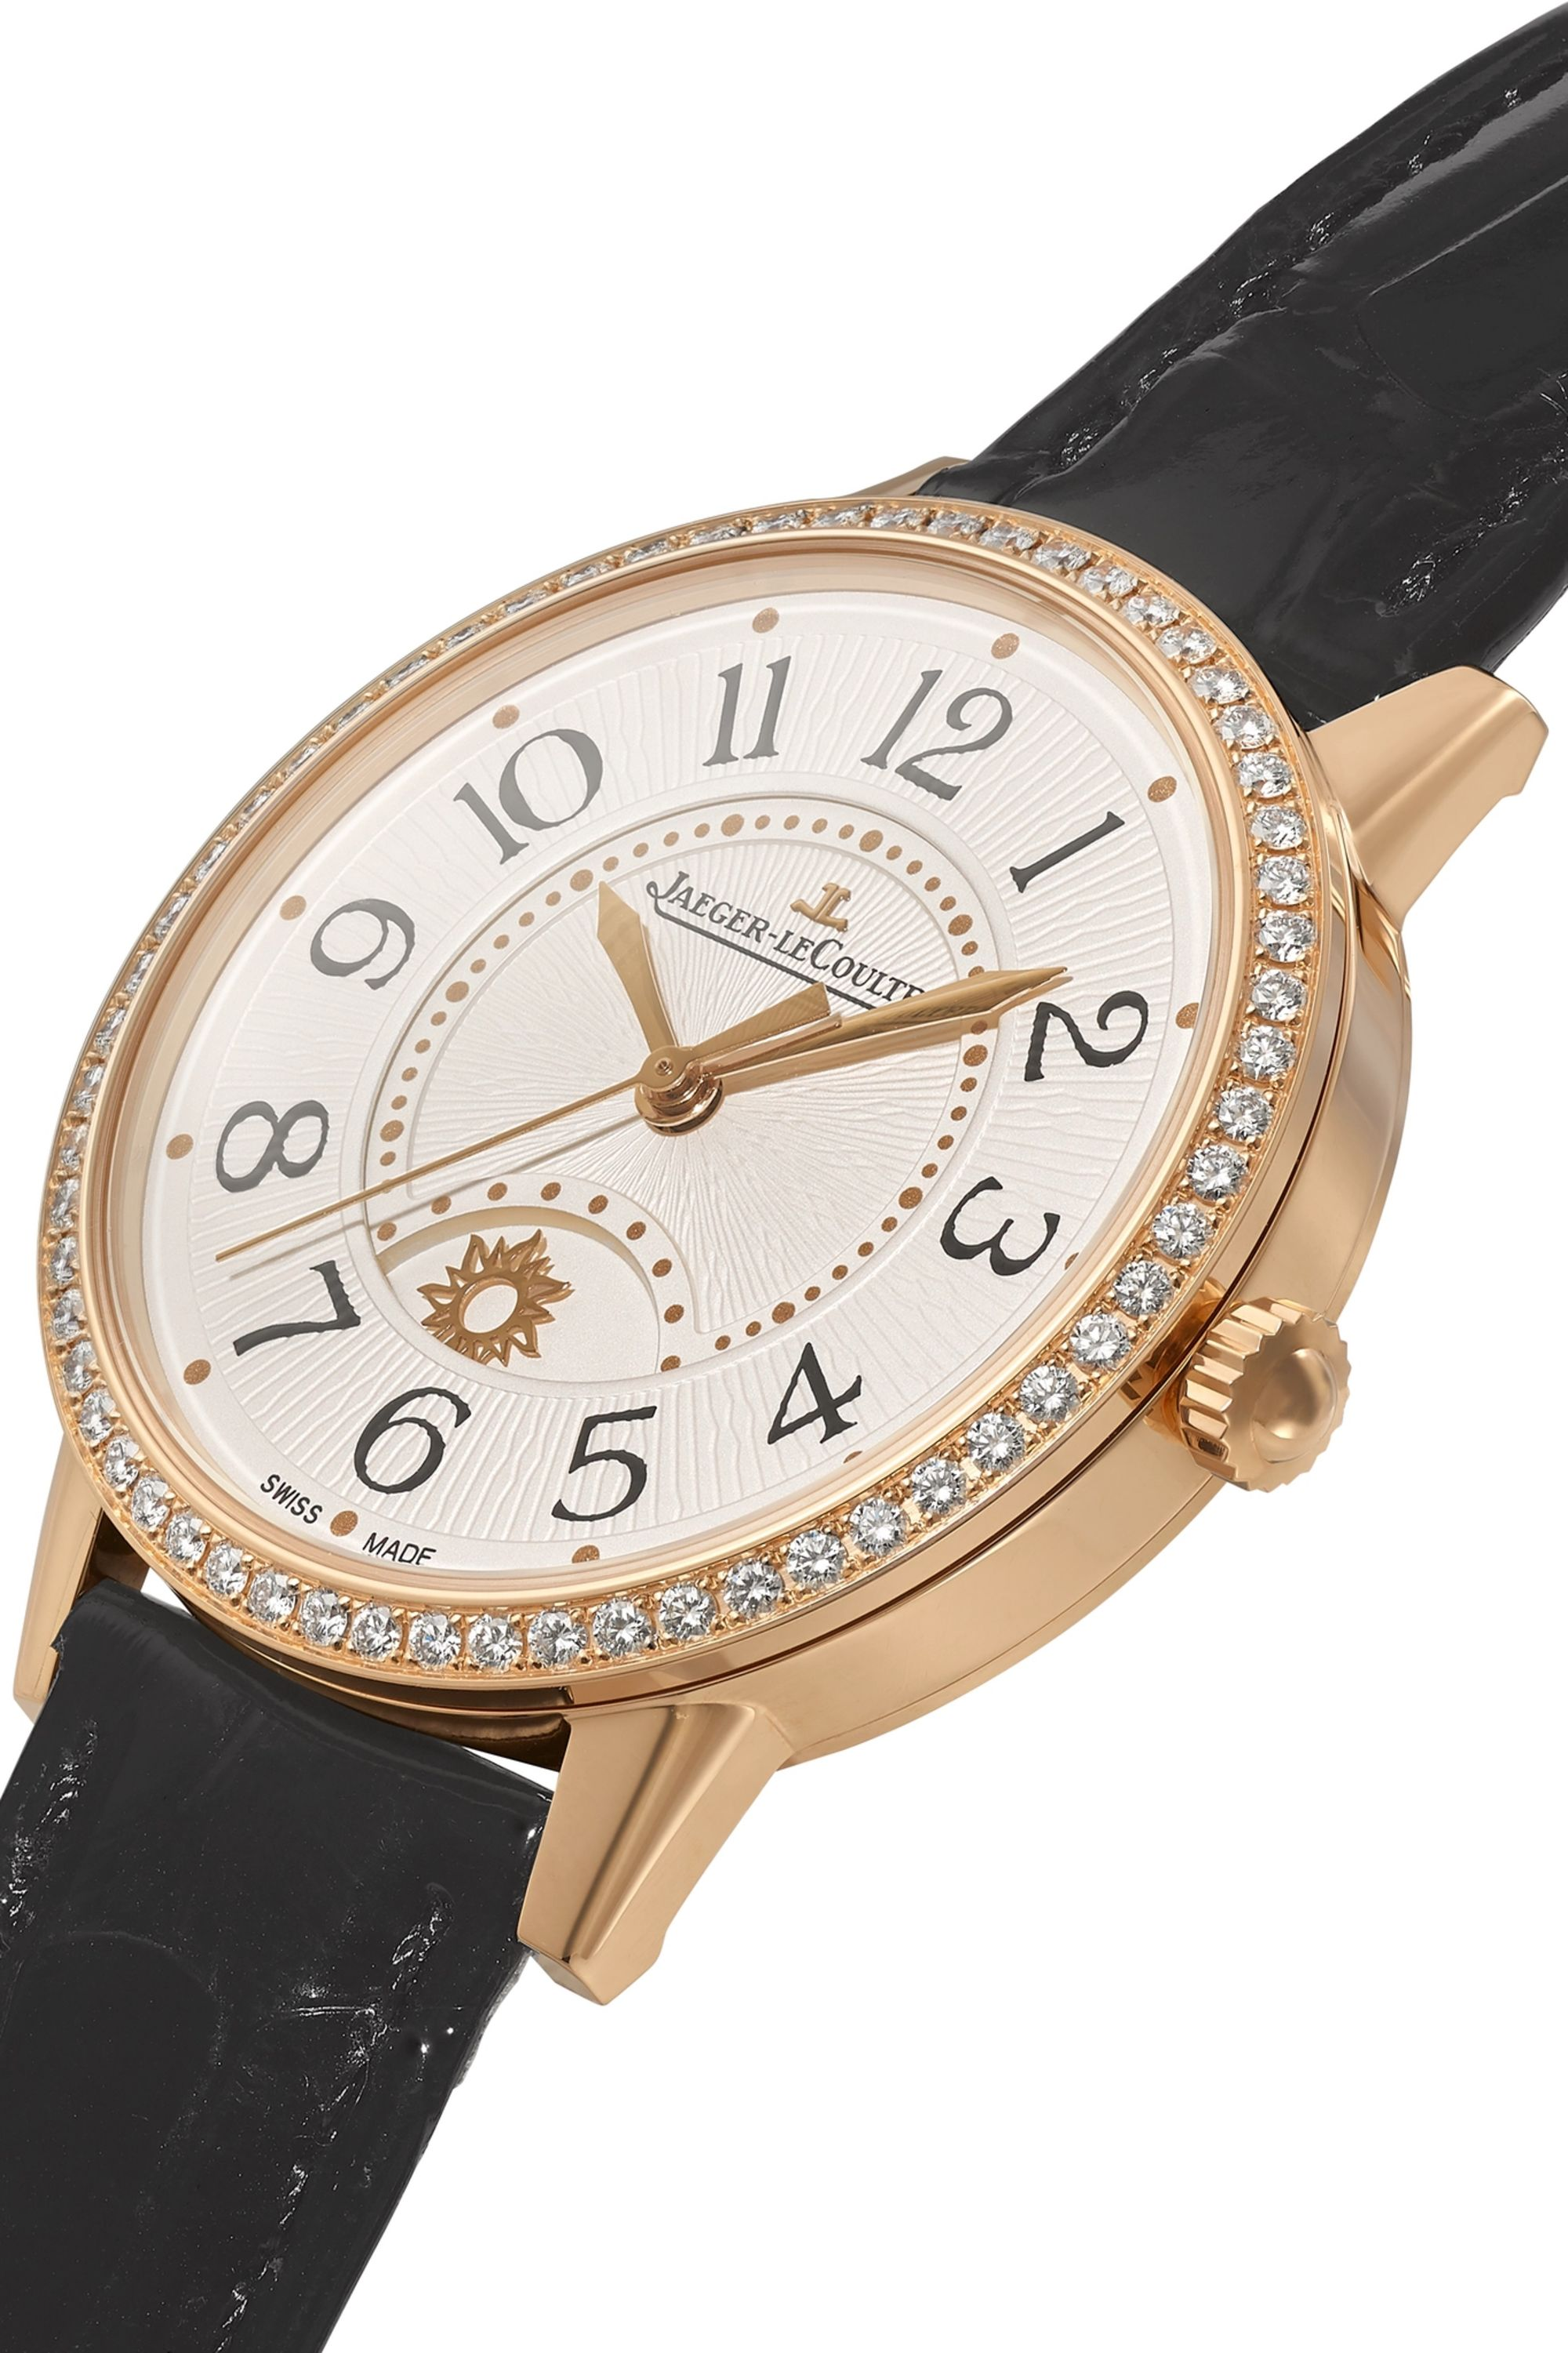 Jaeger-LeCoultre Rendez-Vous Night & Day 34mm medium rose gold, alligator and diamond watch